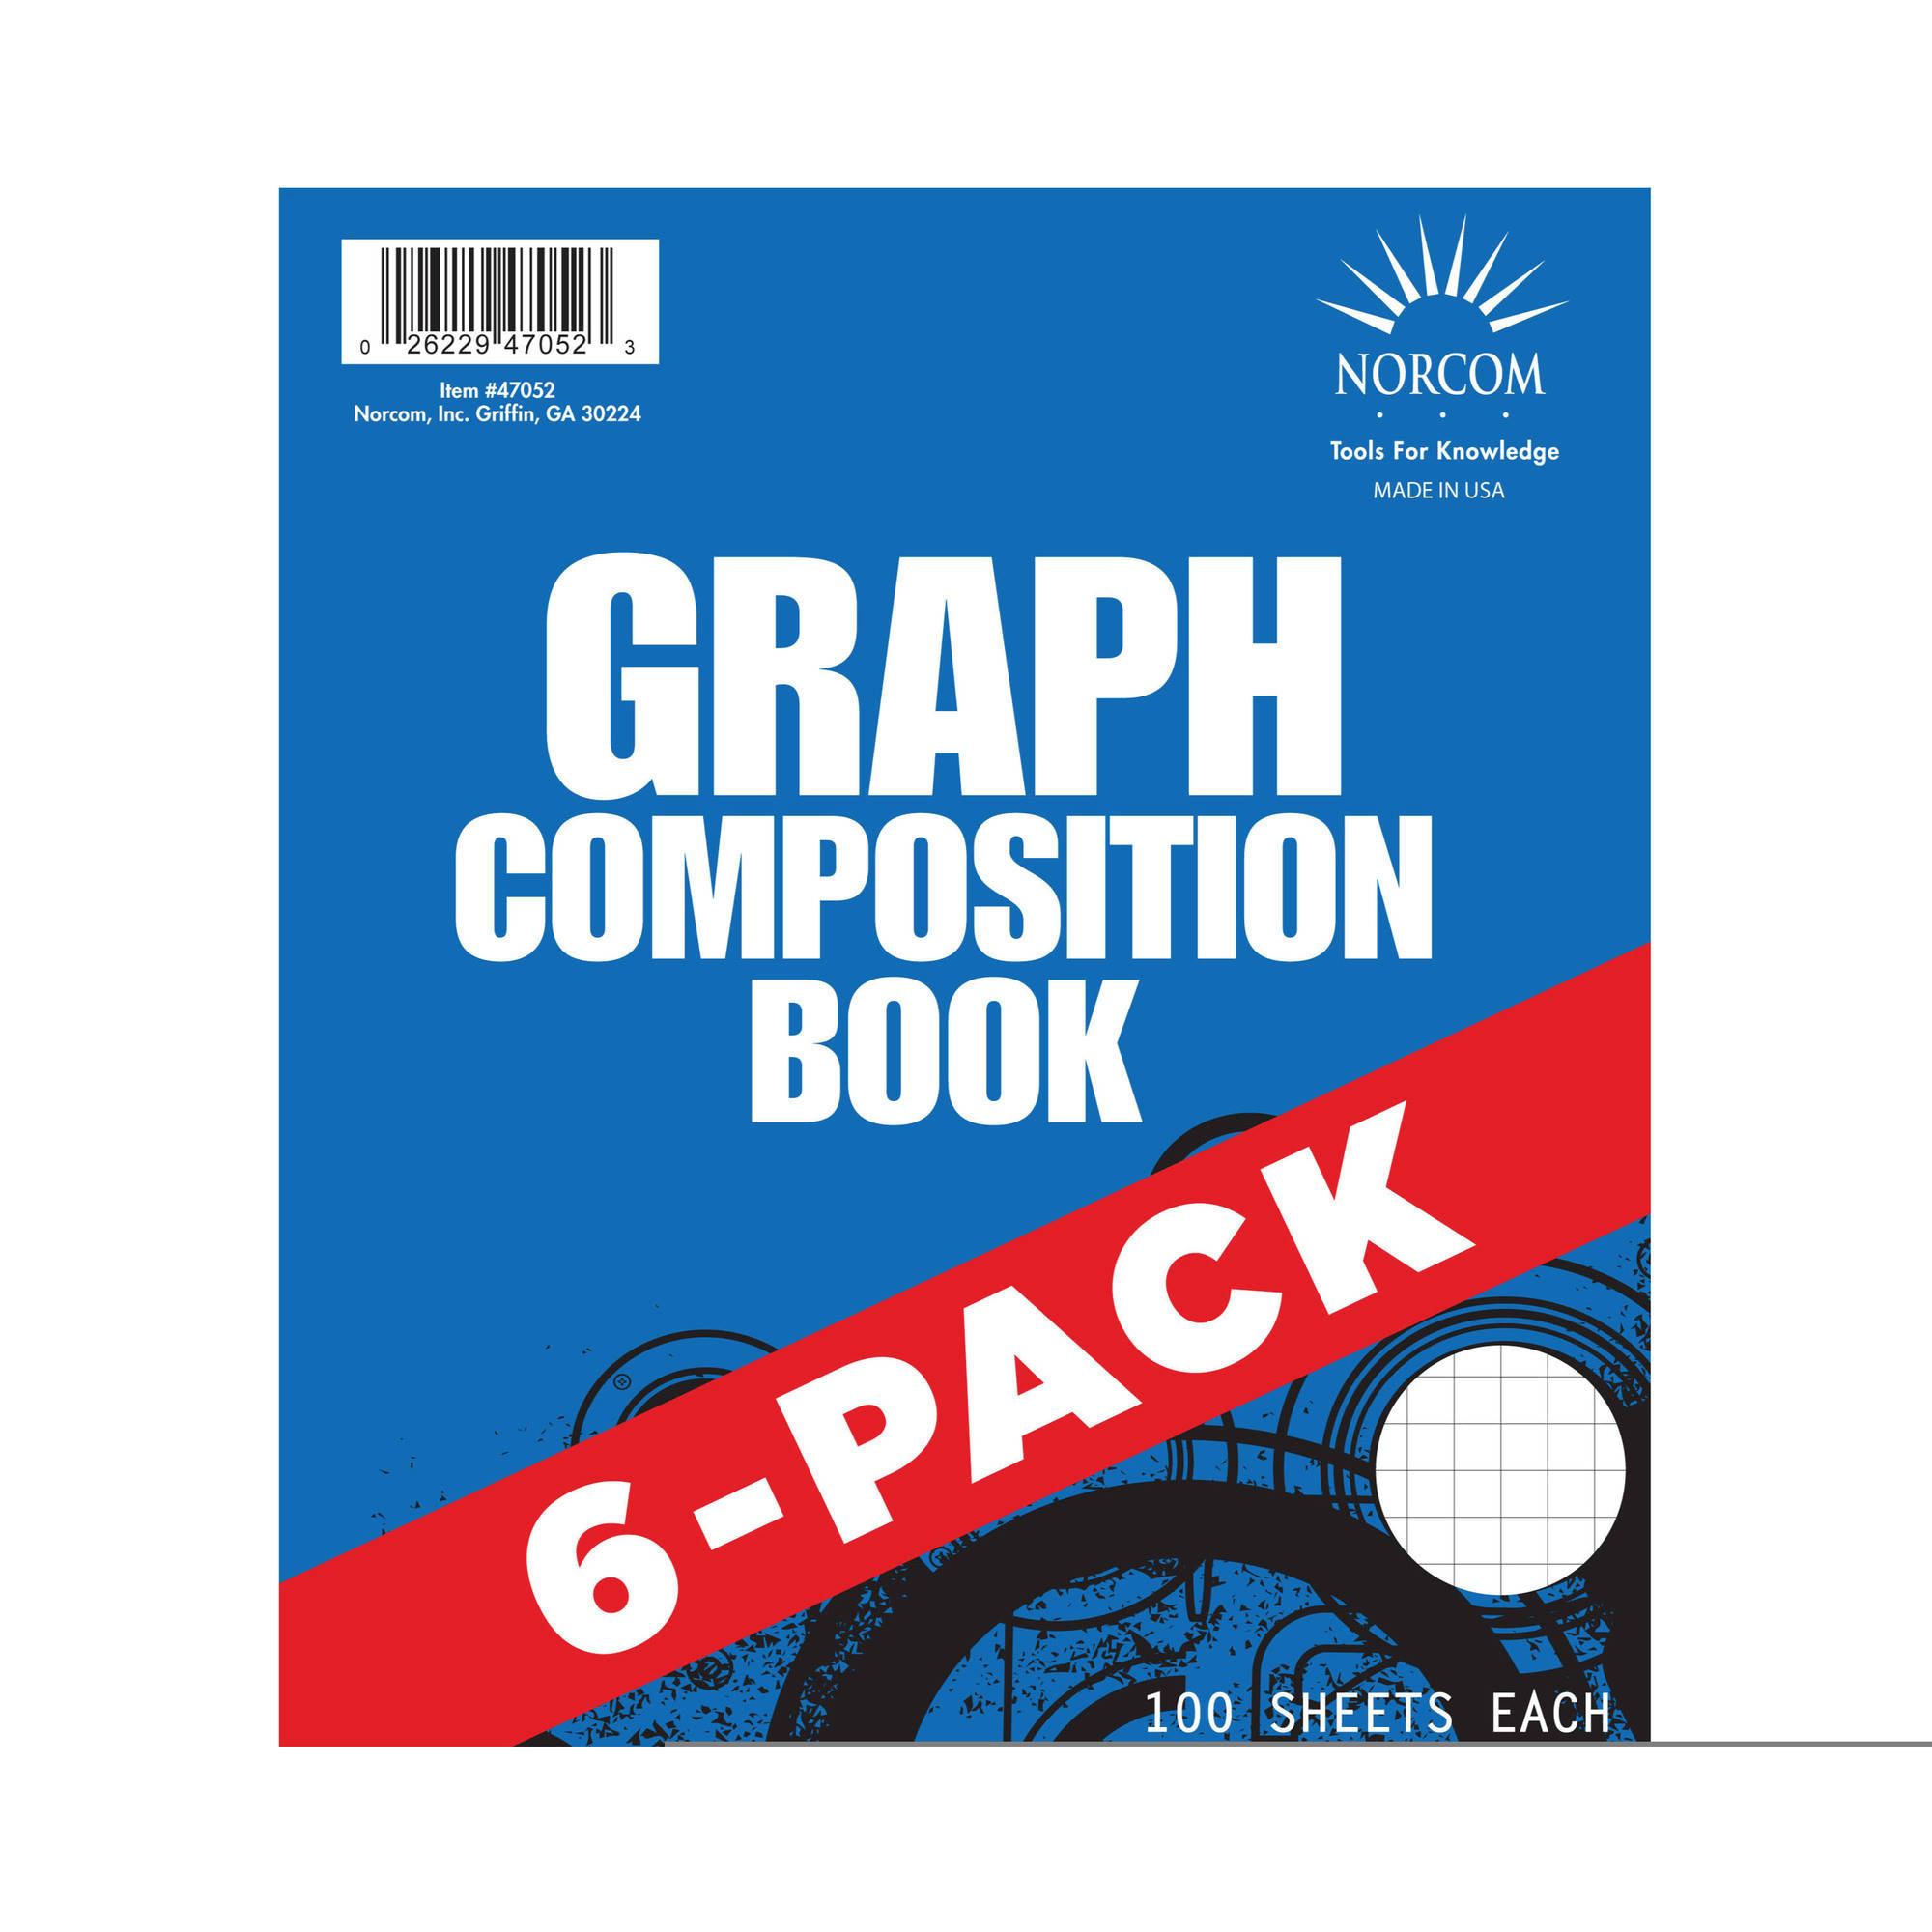 Norcom Graphing Composition Book, 6 Pack 4x4 Quad